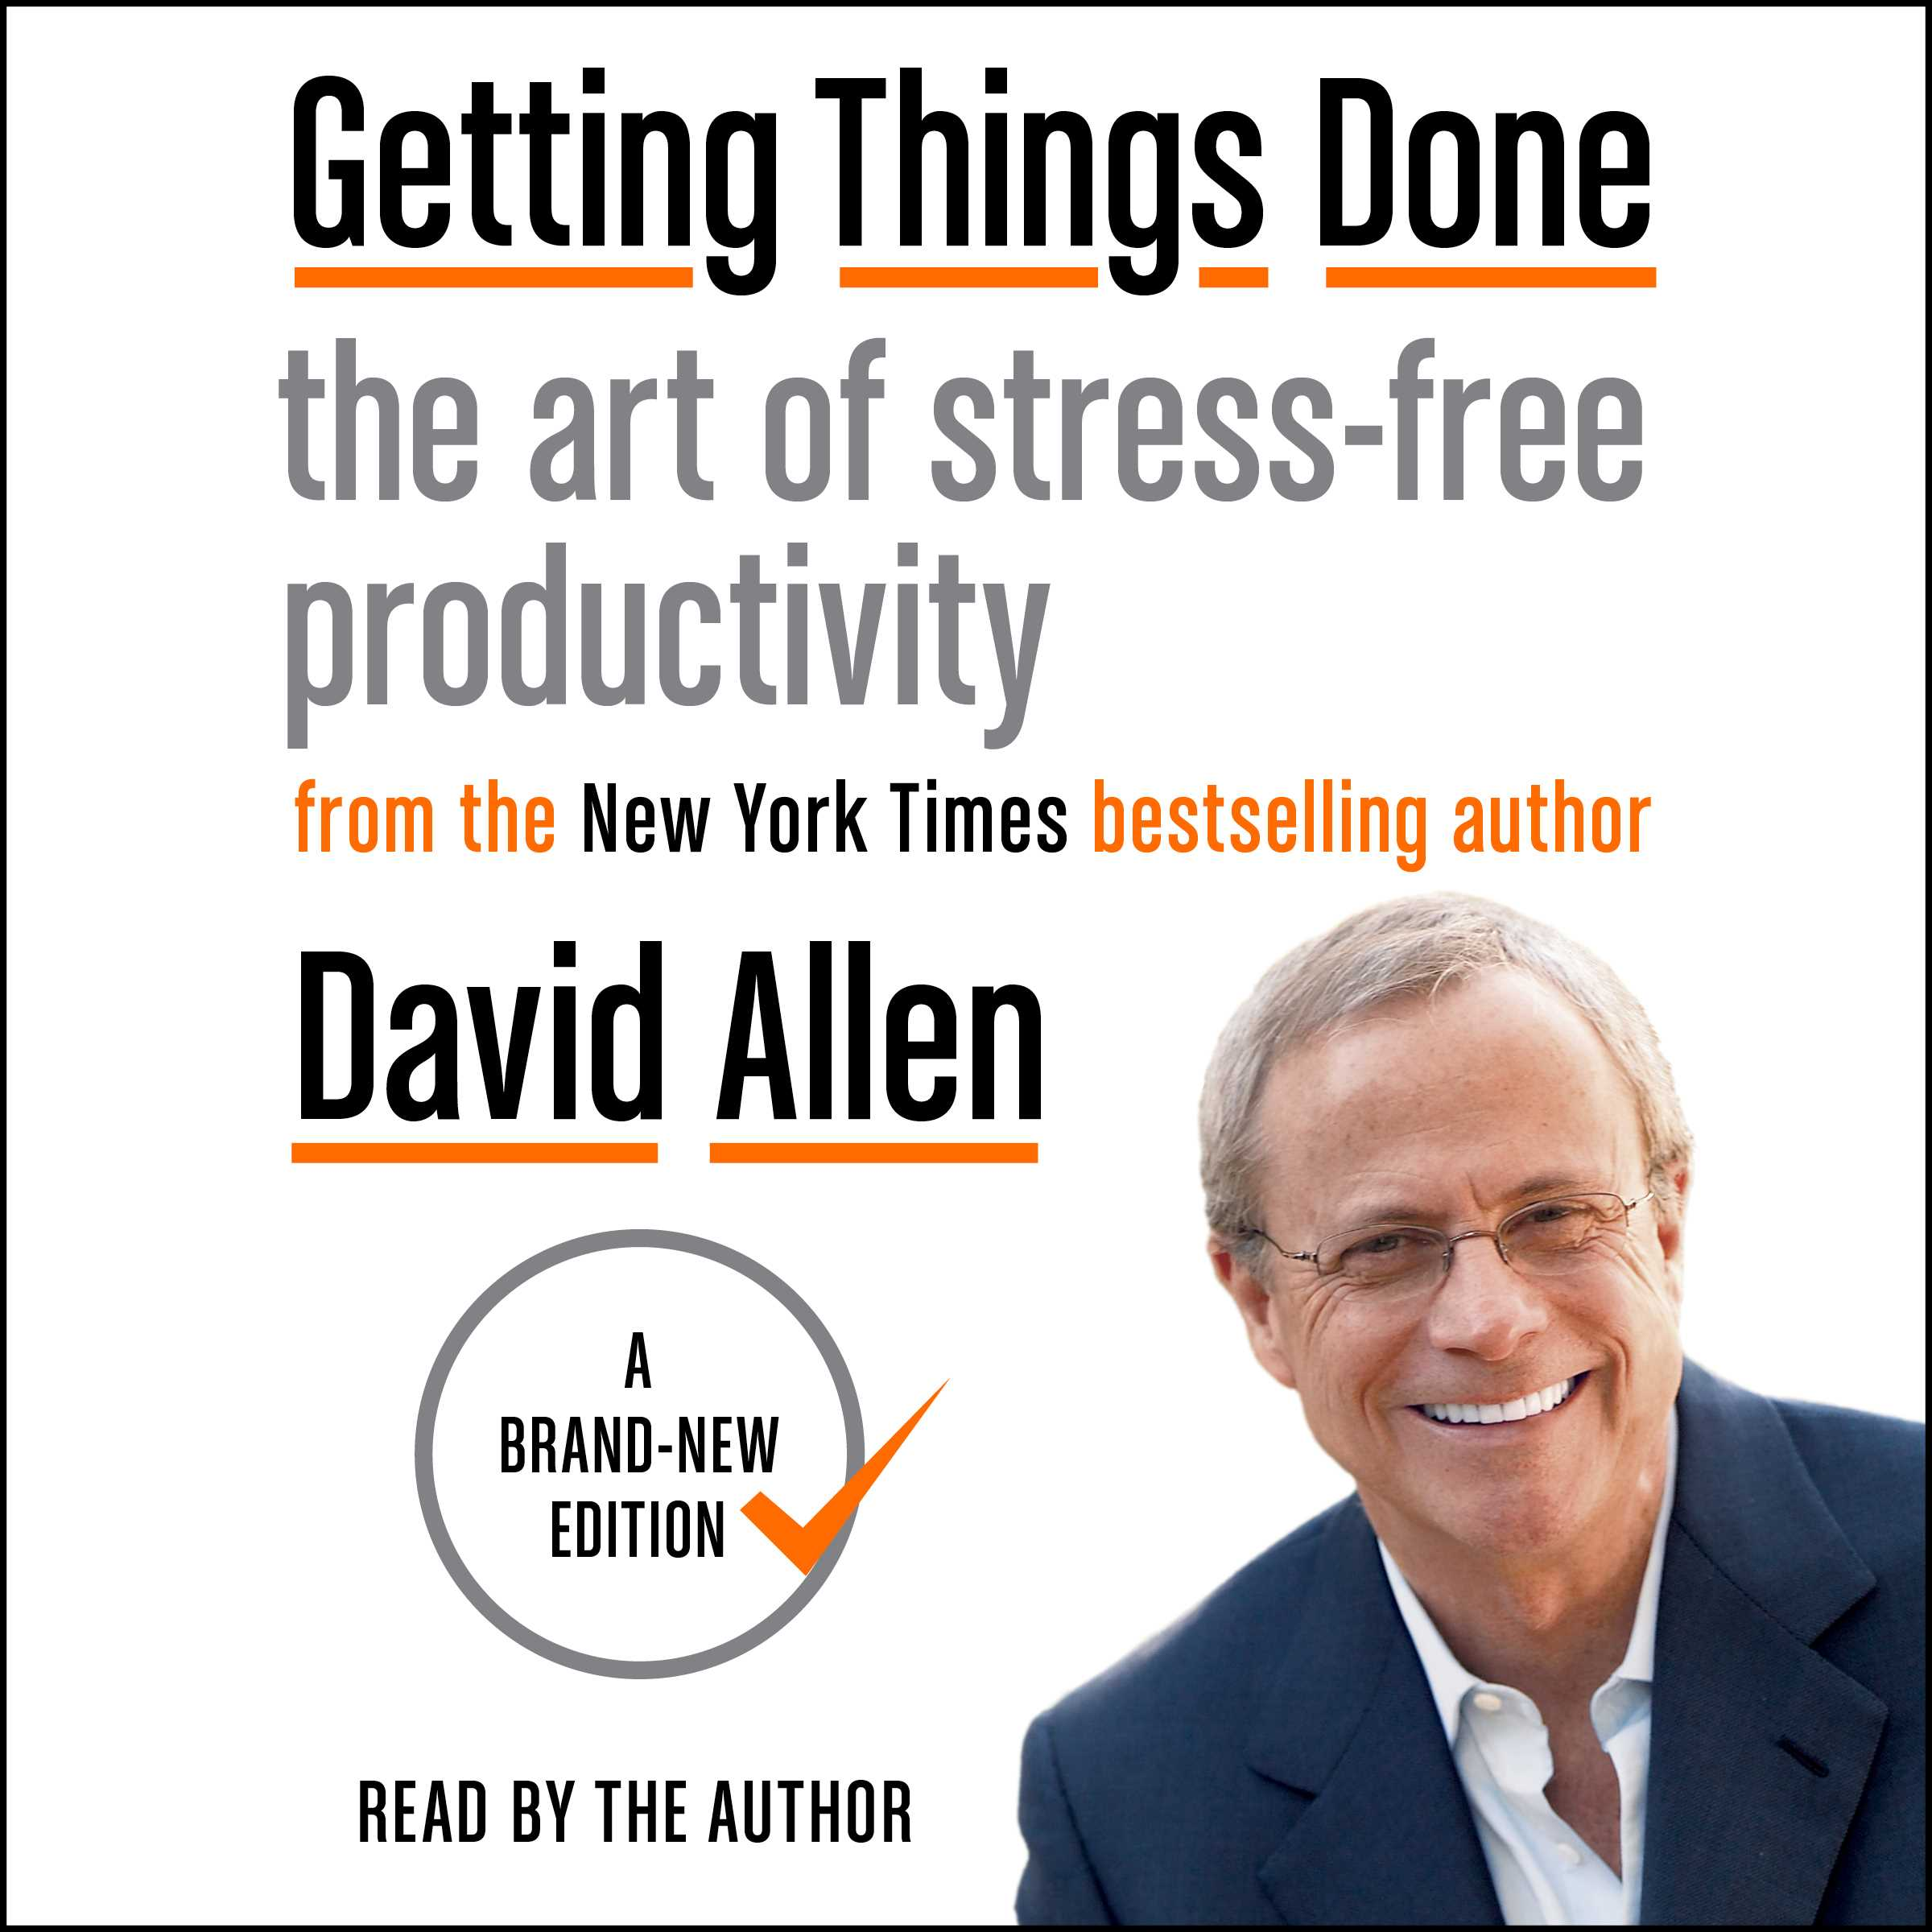 Getting things done 9781508215547 hr